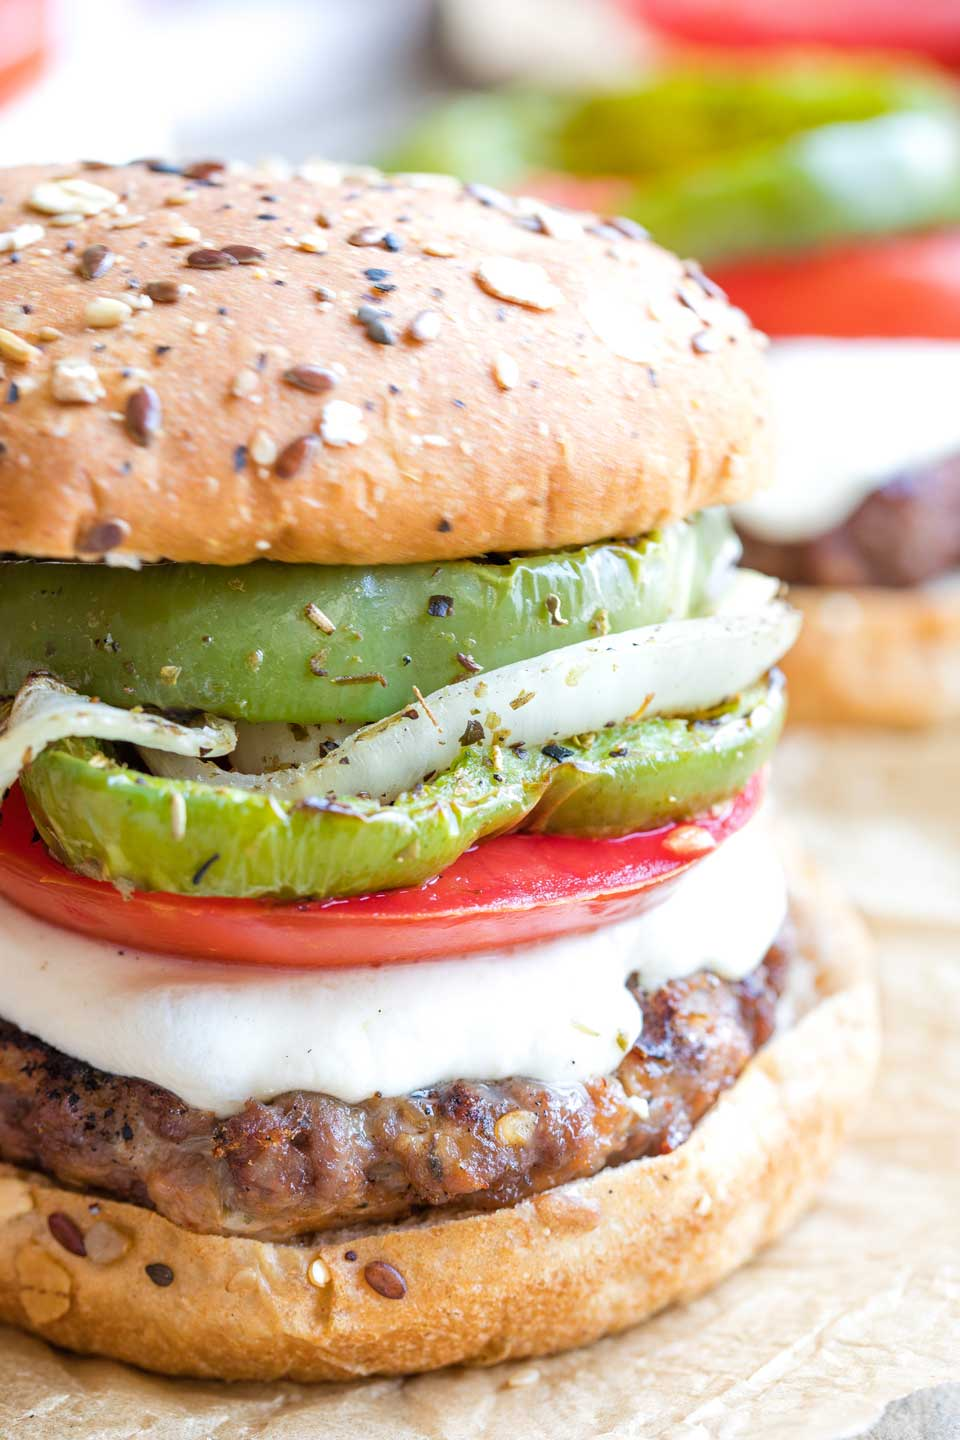 Closeup of the right side of a completed hamburger topped with Italian vegetables, cheese and bun.